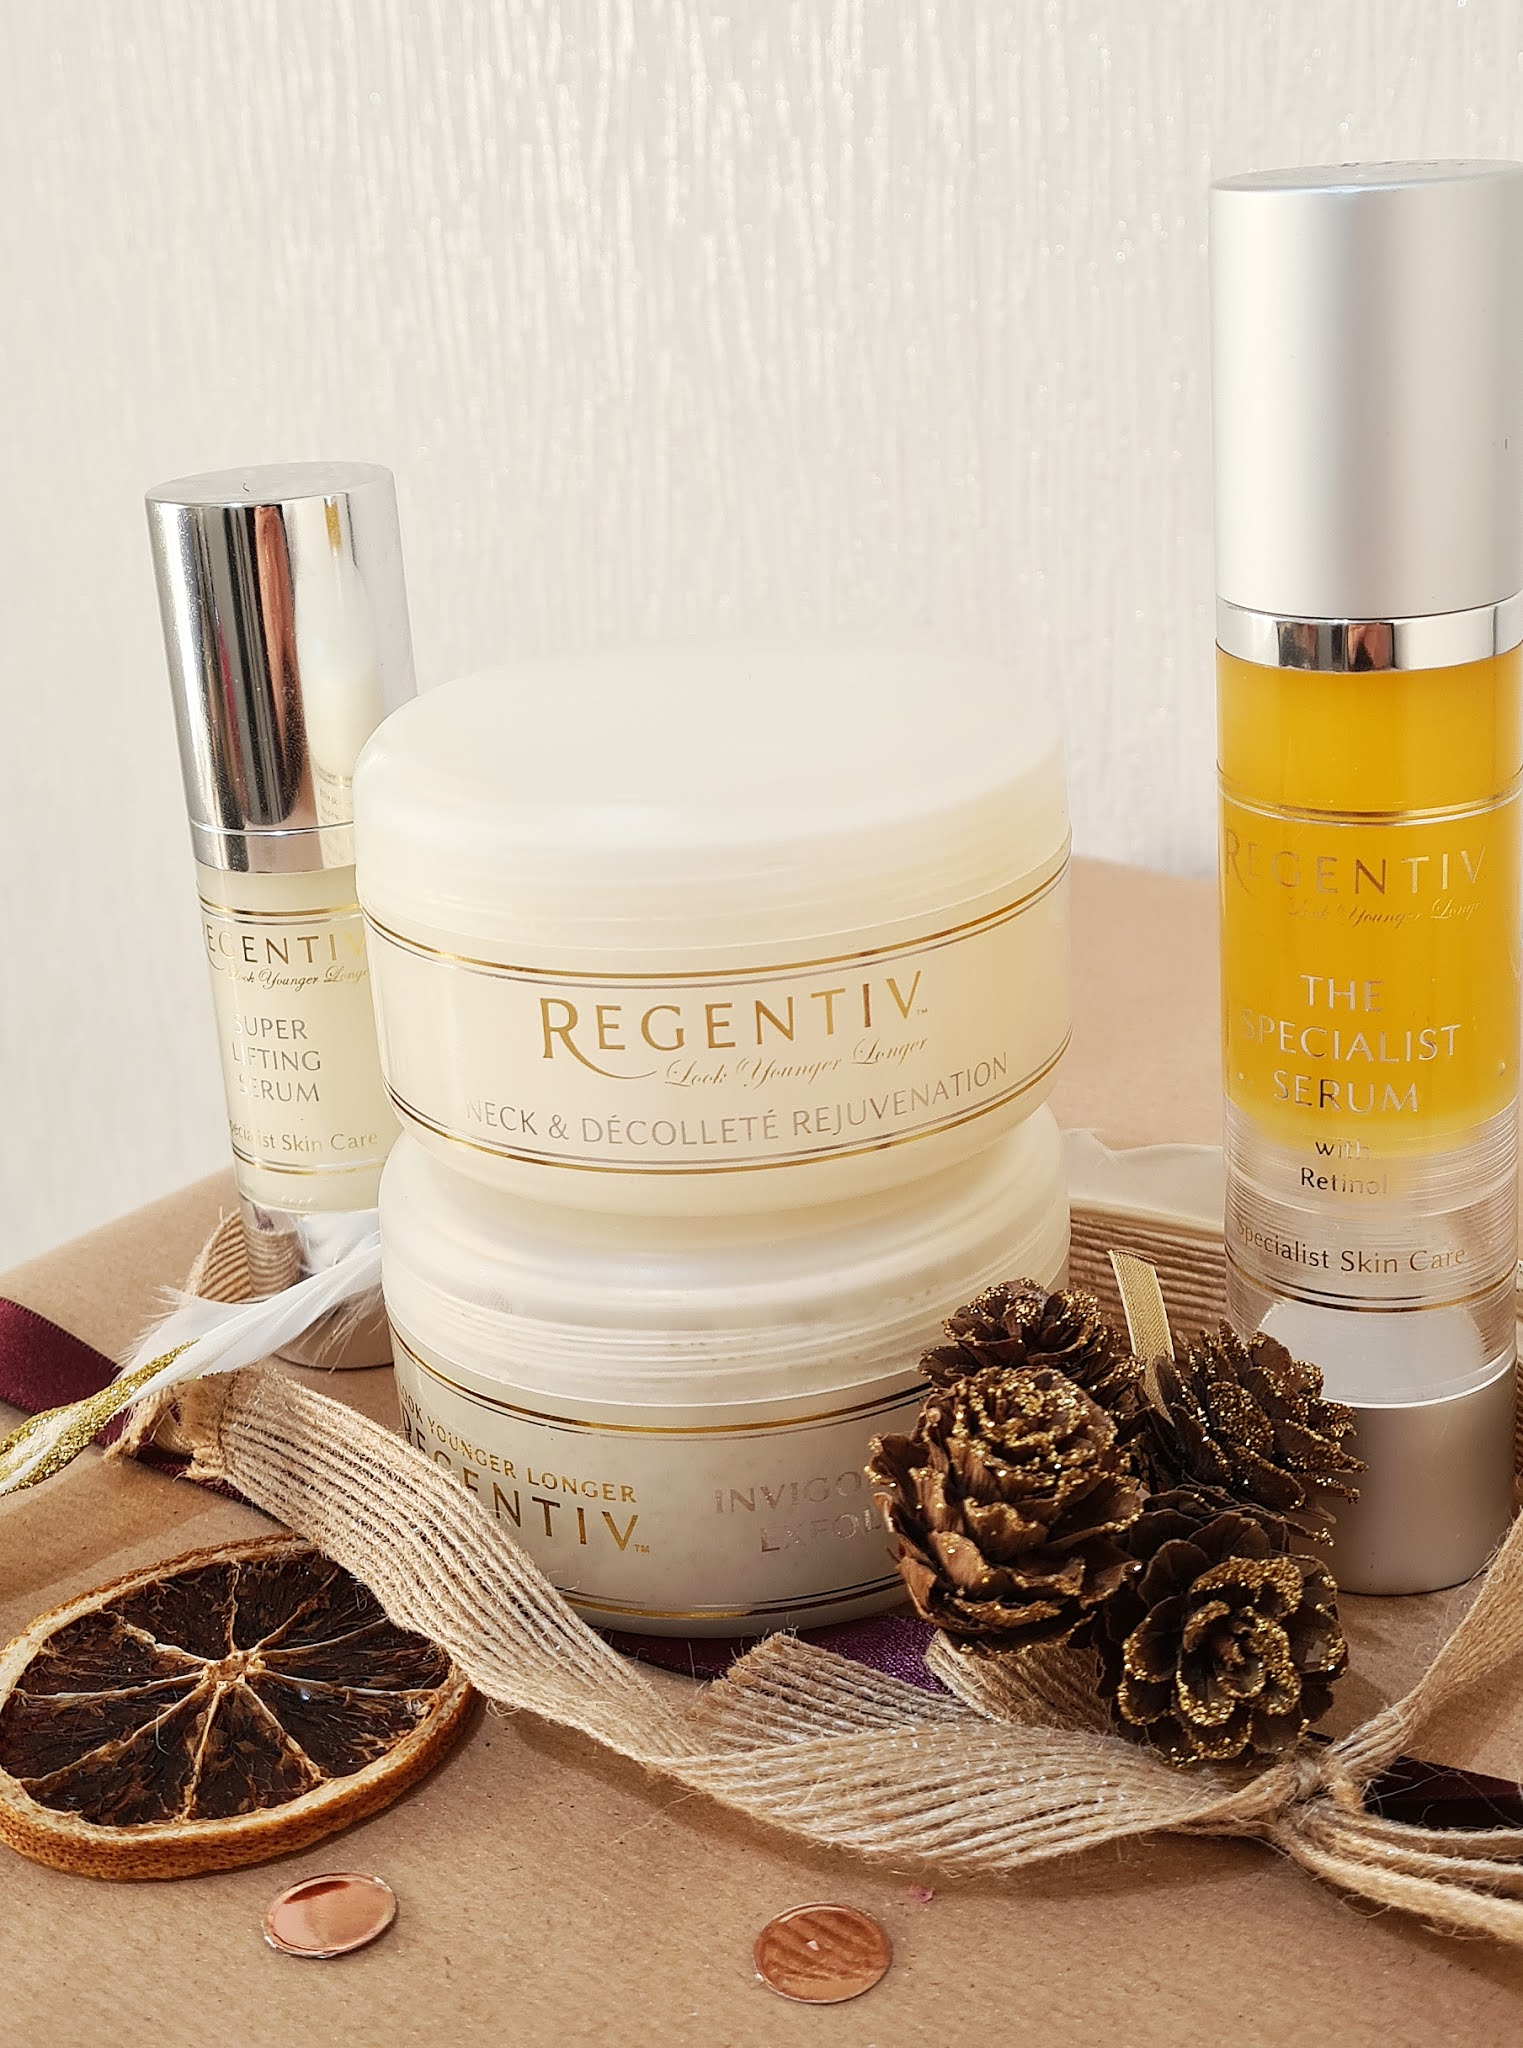 Some of the UK skincare brand Regentiv's products created to solve problems such as lines, wrinkles and lax skin texture